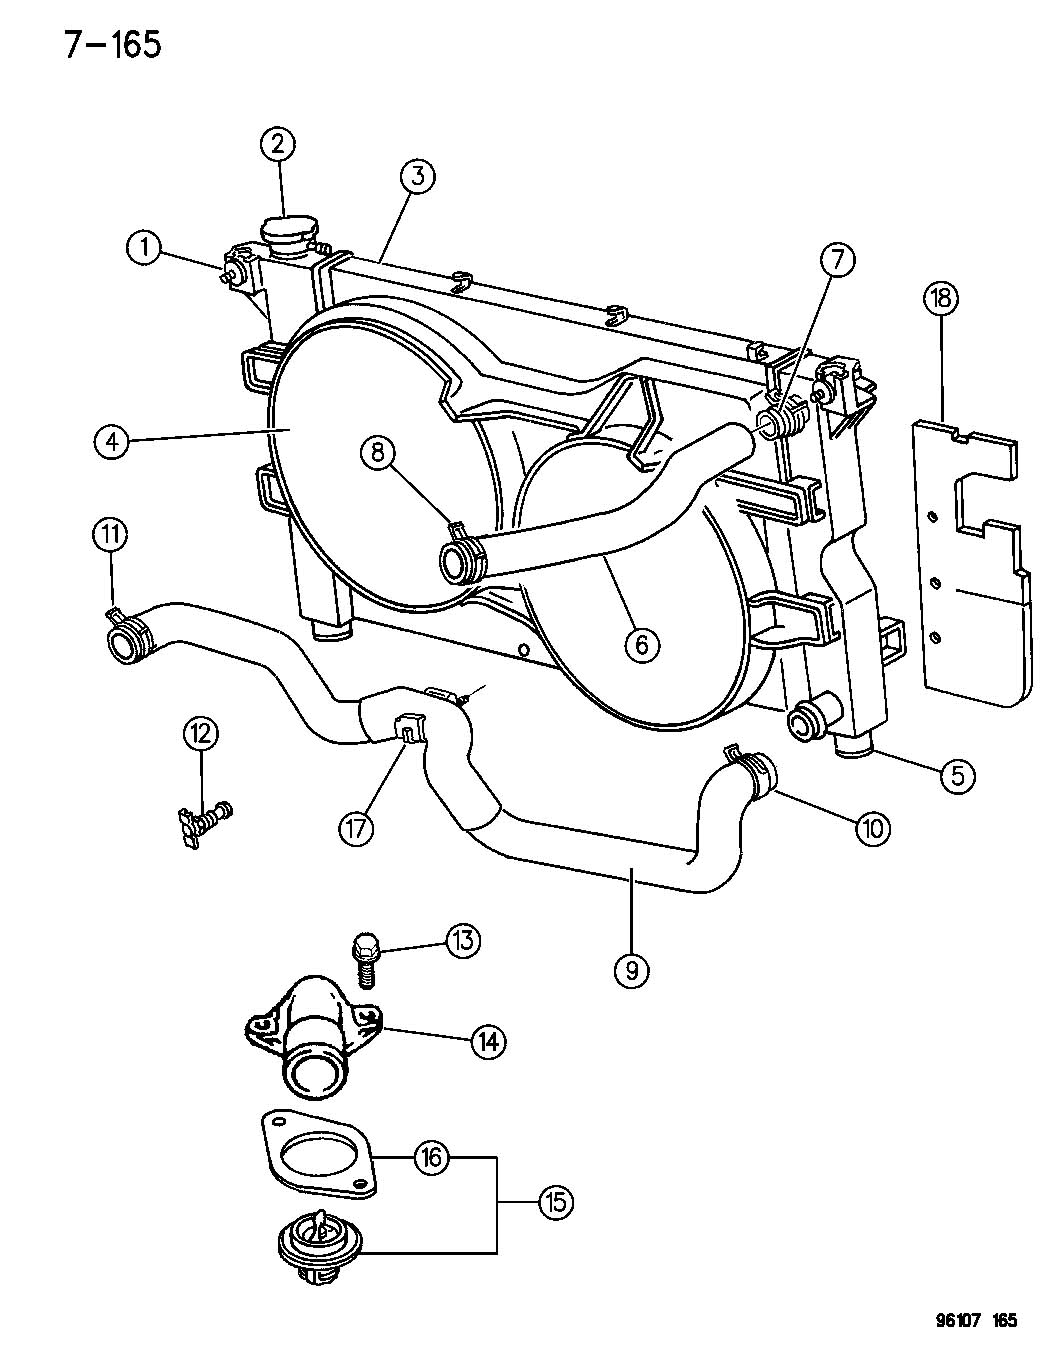 2005 chrysler pacifica blower motor diagram html for 06 jeep liberty window regulator recall